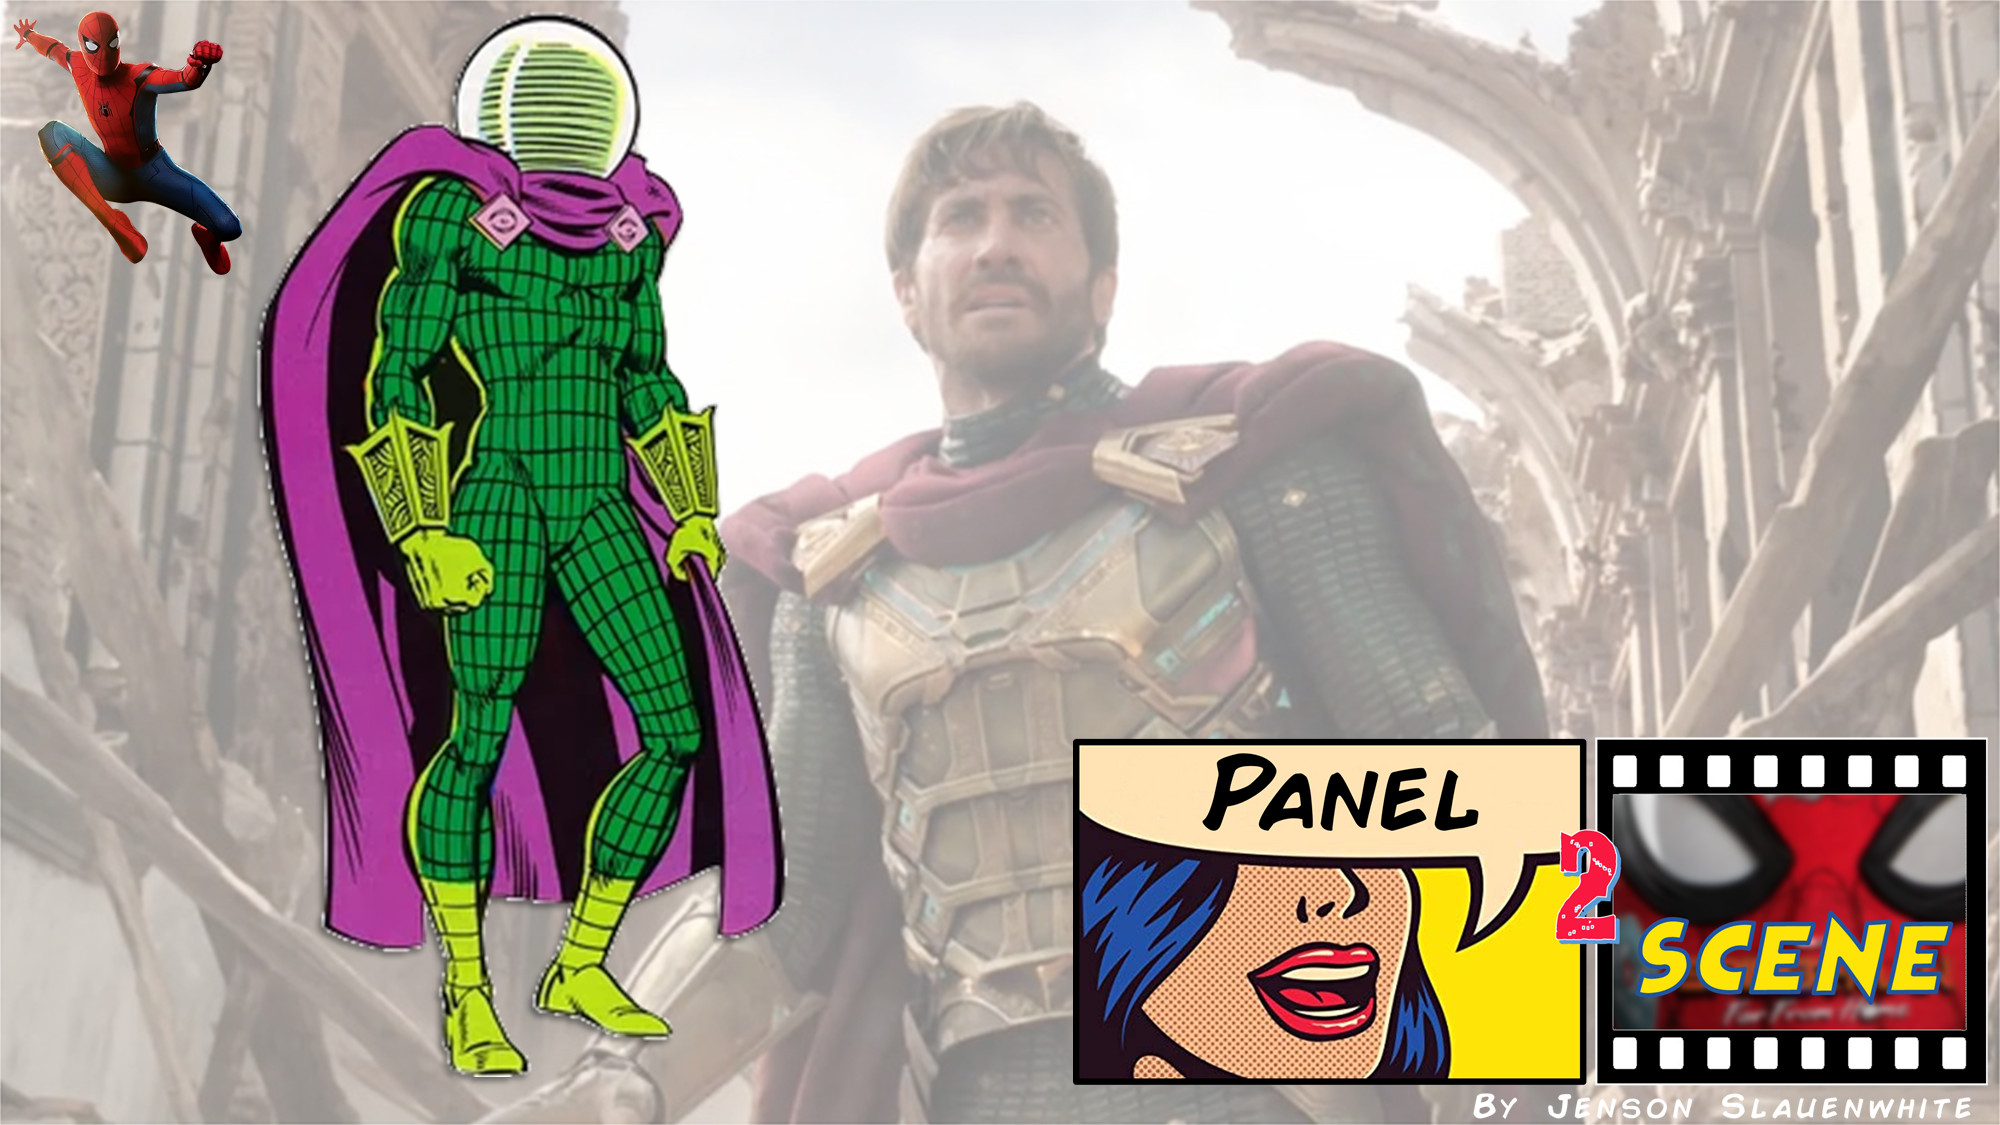 The Mystery Behind The Mysterious Mysterio Solved